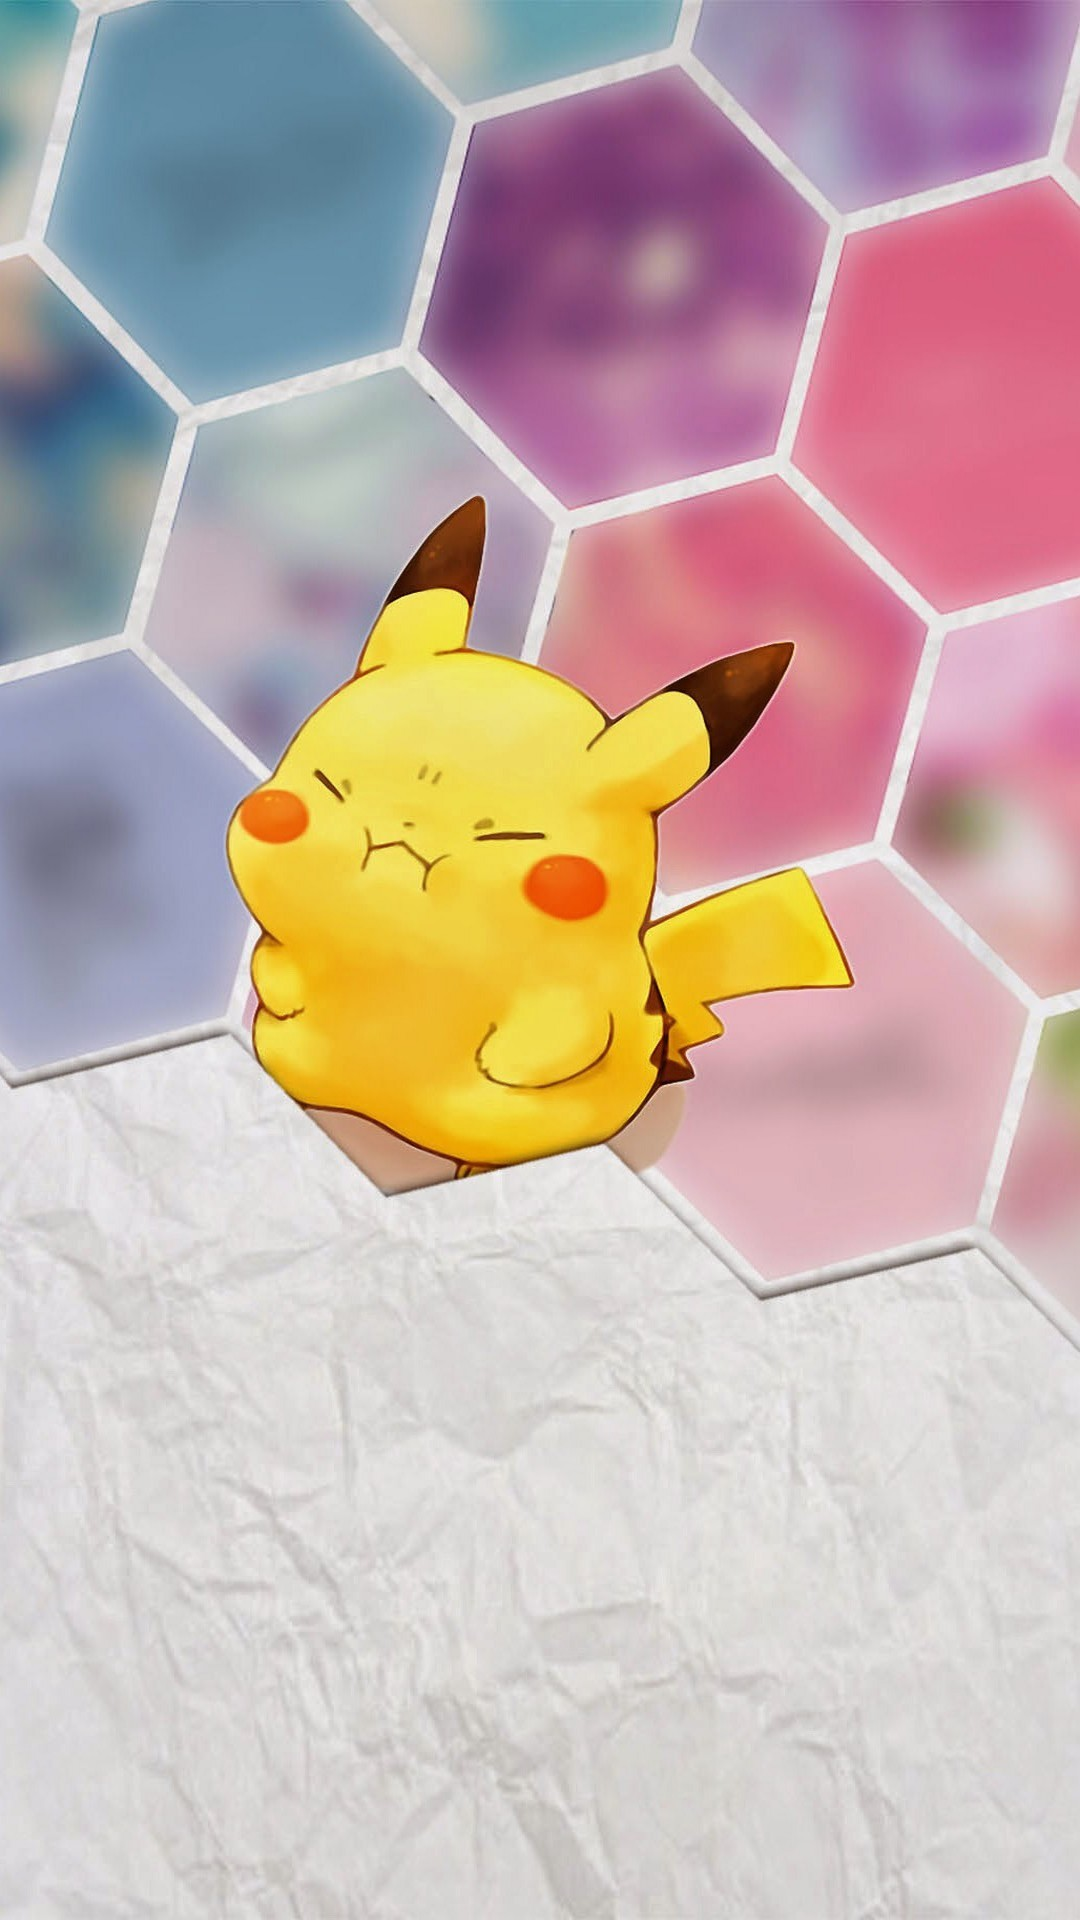 1080x1920 Tap image for more iPhone 6 Plus Pikachu wallpapers! Pikachu - @mobile9 |  Cute